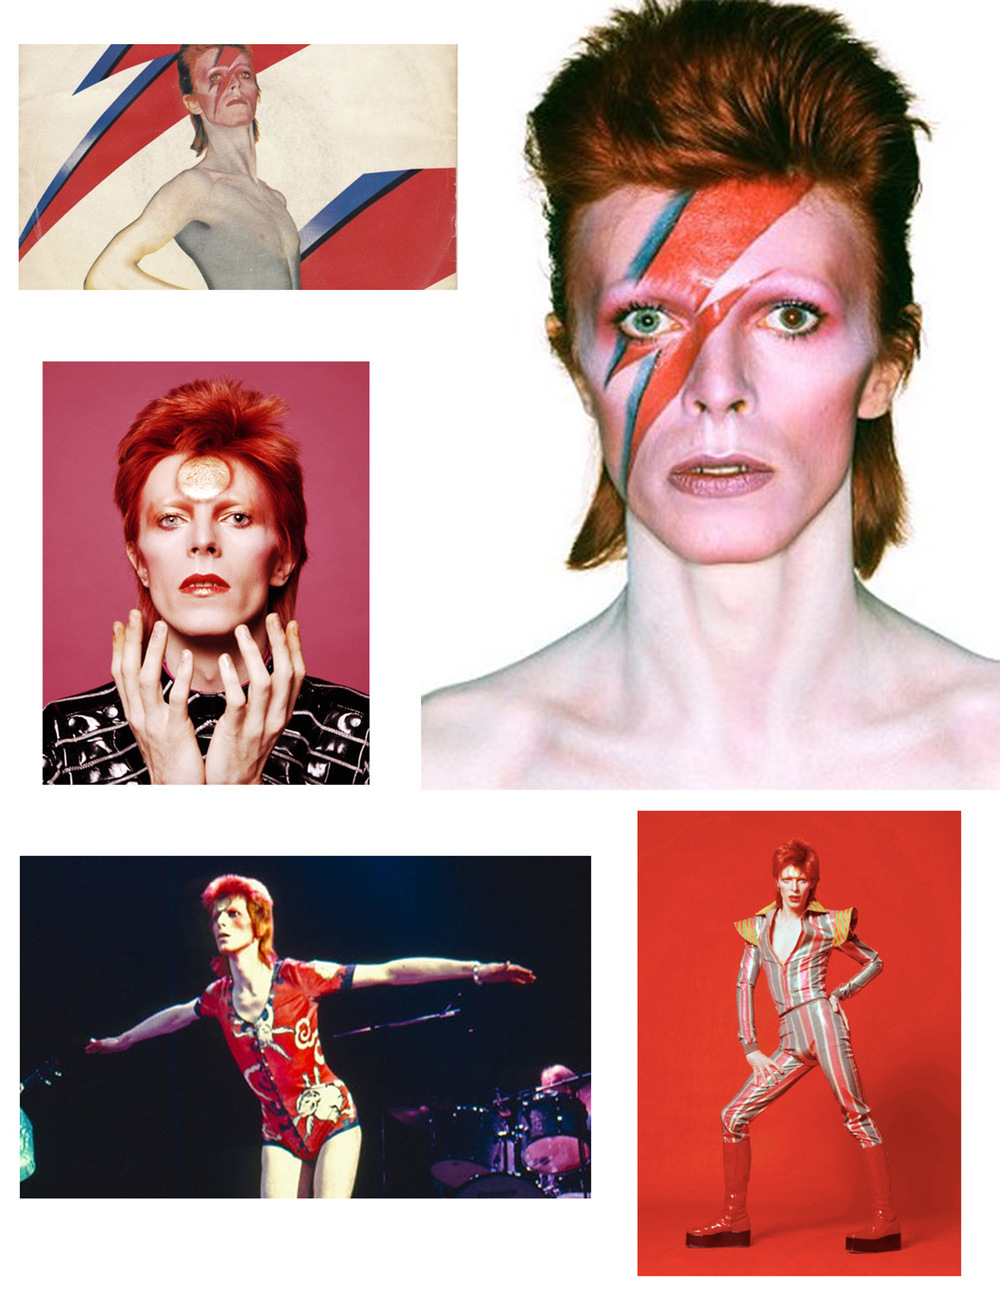 Inspiration-2--Bowie--Stardust-Collage-Option-(1).jpg